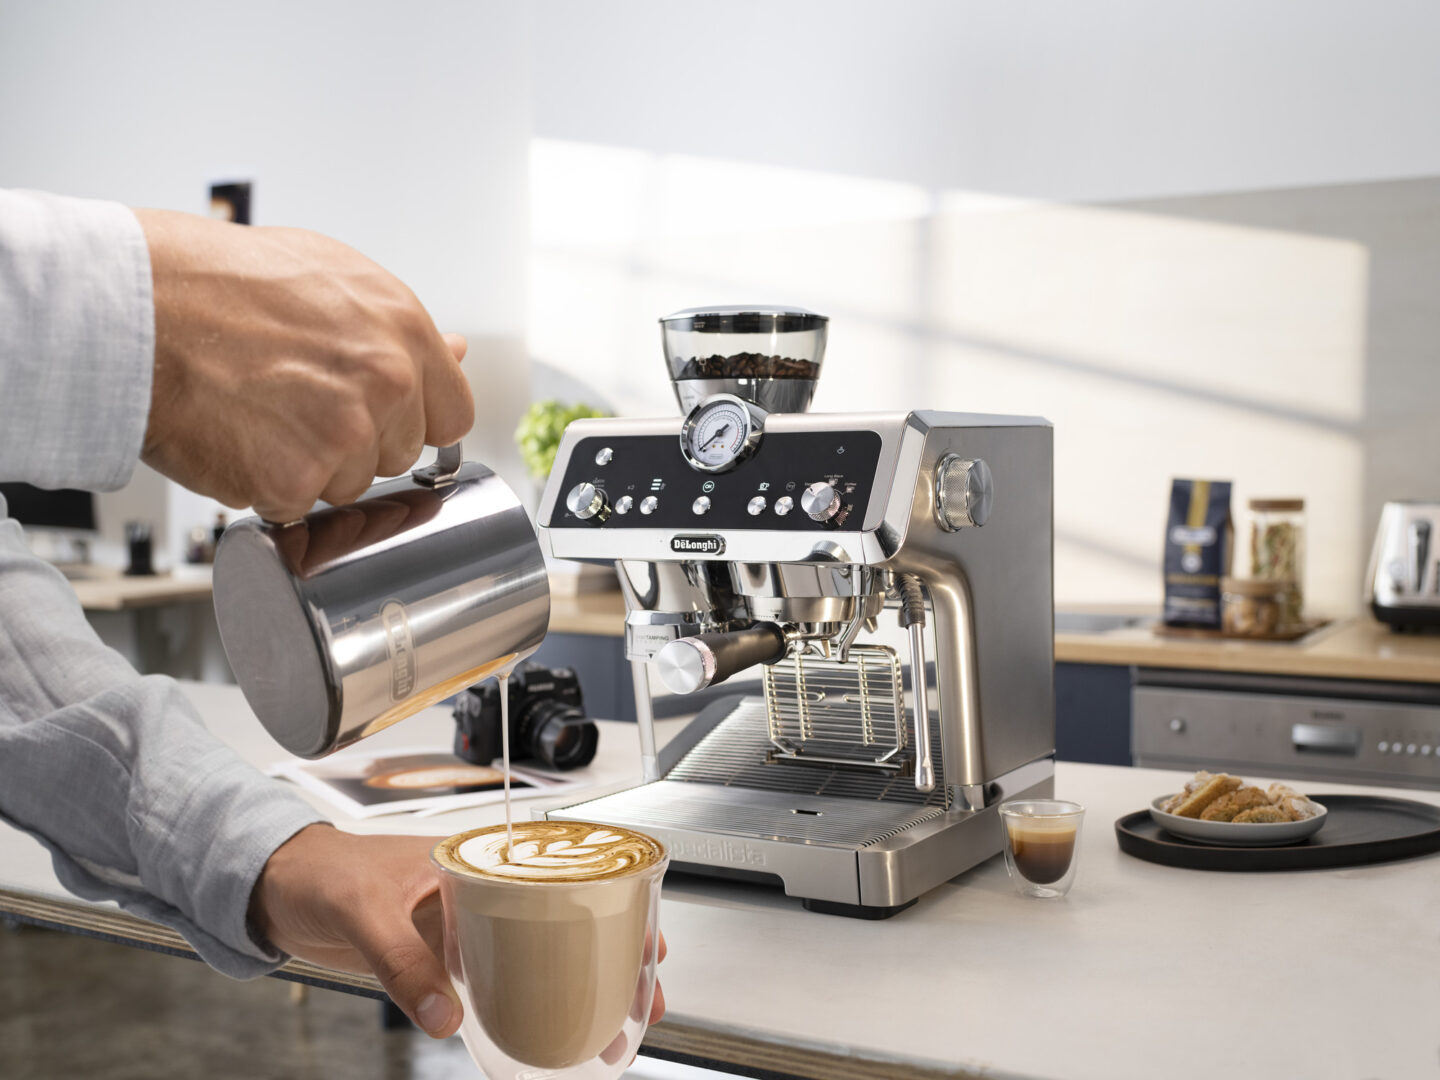 creating latte art from frothed milk made from the De'Longhi La Specialista Prestigio coffee machine